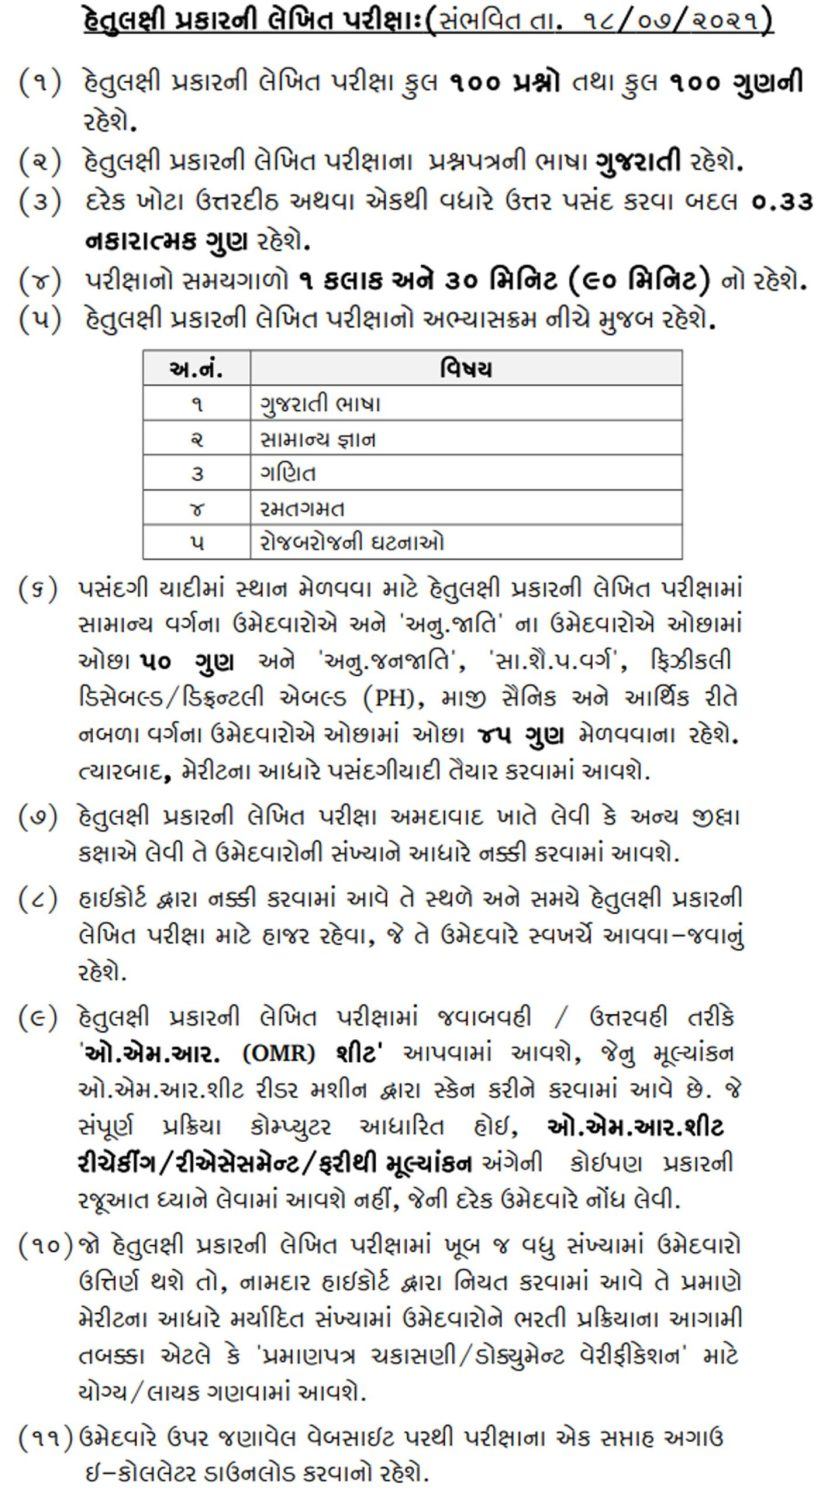 Gujarat High Court Attendant Exam Pattern & Syllabus 2021